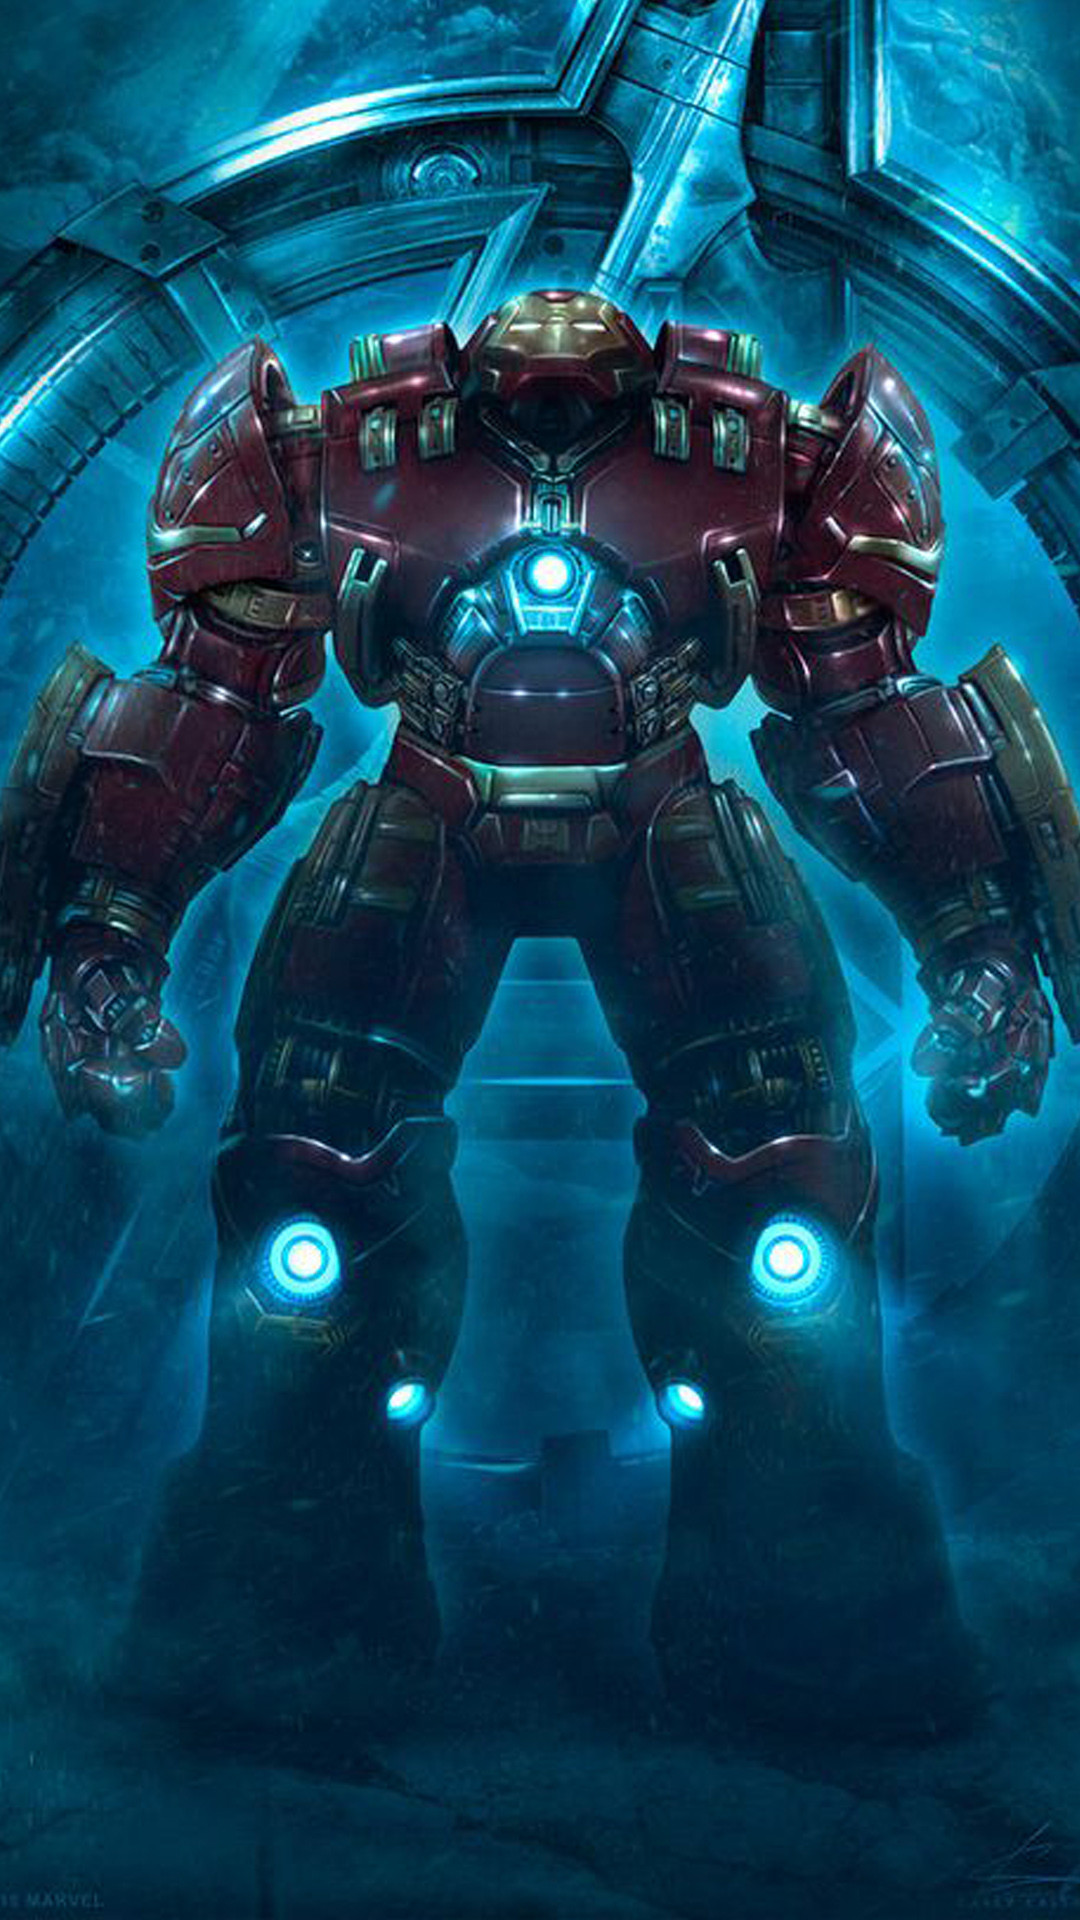 Full Hd Live Wallpaper For Laptop Iron Man Jarvis Wallpaper Hd 72 Images